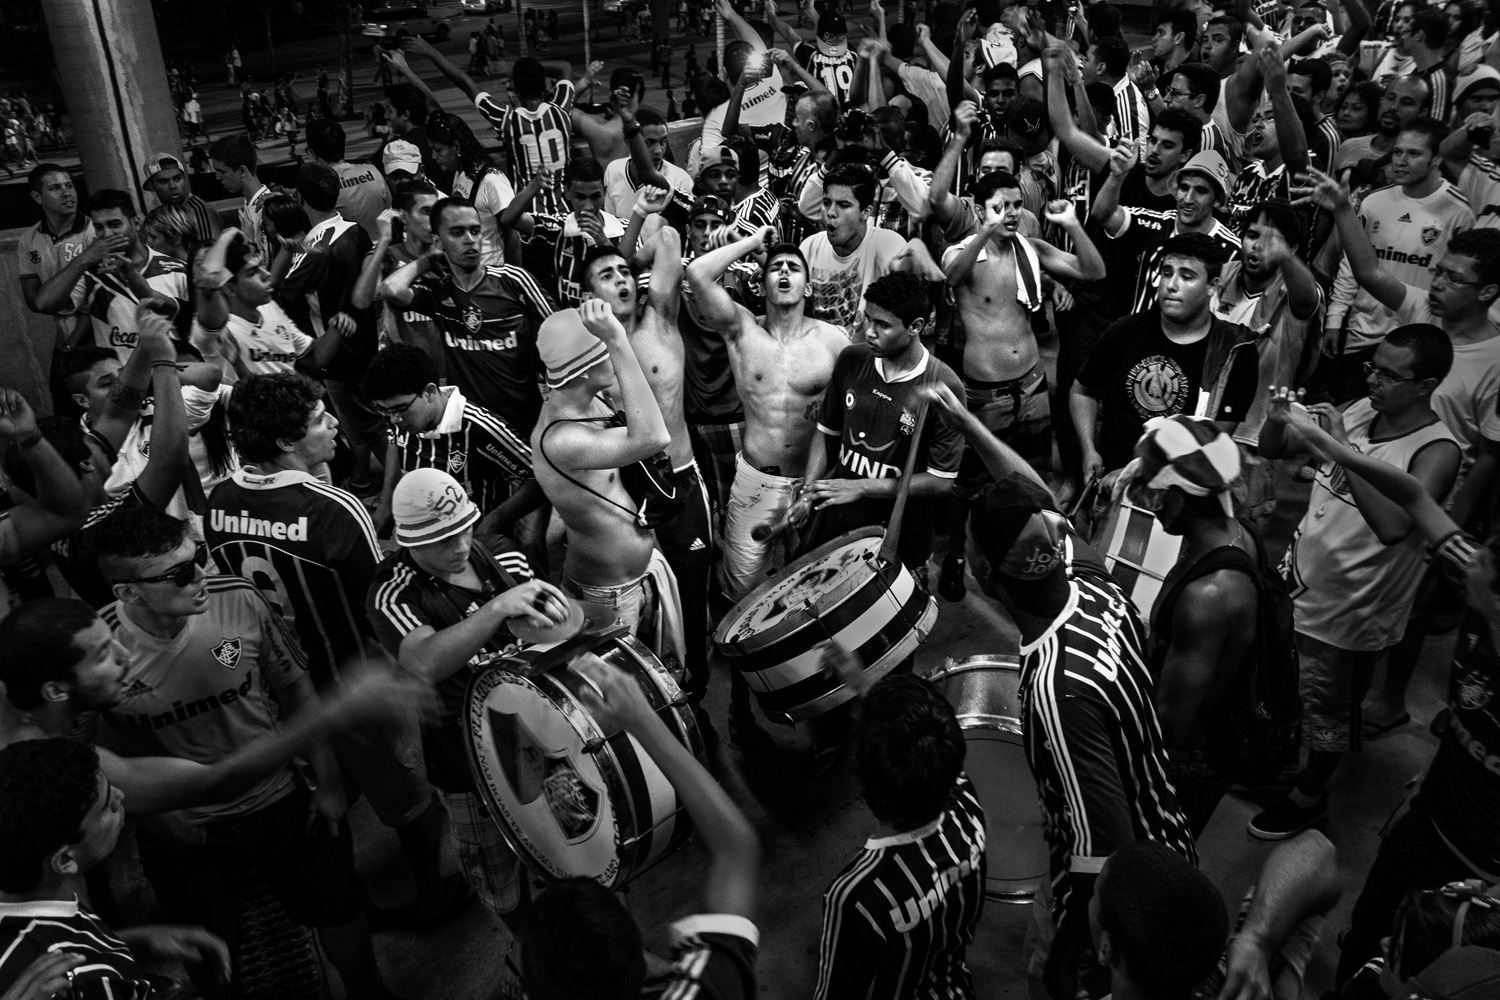 Fans of Fluminense FC at Maracana Stadium celebrating after a team win against Clube de Regatas do Flamengo. The teams are two of the most important in Rio de Janeiro.